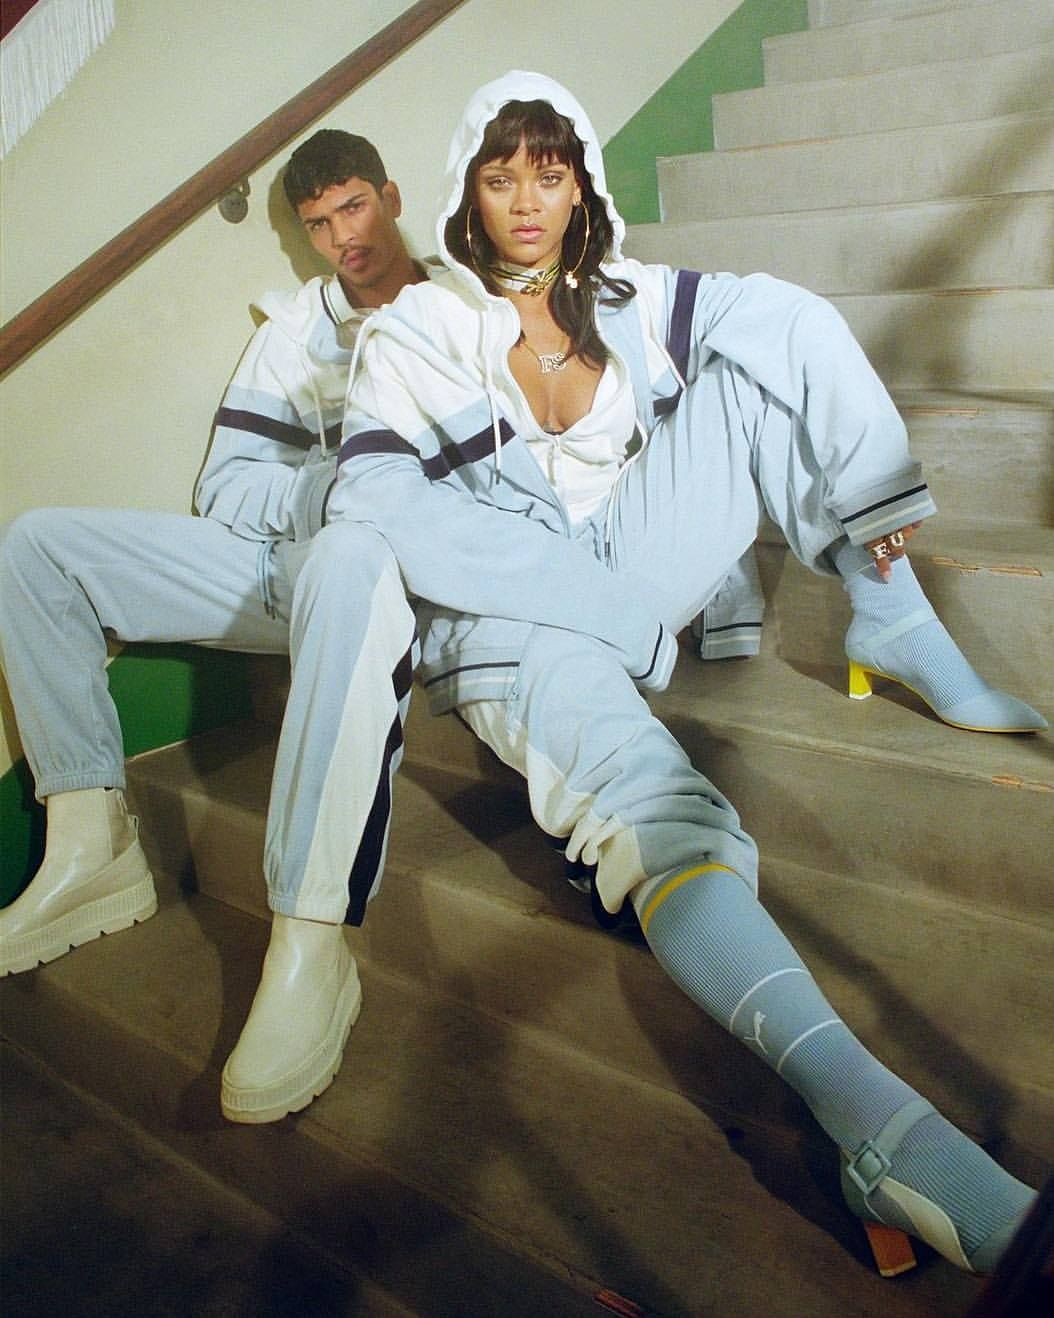 Obsession is not even a strong word when it comes to @badgalriri and her personal style. How can it be that she has us wanting a powder blue his and hers velour tracksuit? It happened though. The #FENTYxPUMA is the best sports wear colab in the game. Then you add the jewels... Extra #mondaymotivation to have the #FU attitude and body positivity that Rihanna does. #rihanna #fashion #sportswear #fenty #jewllery #yes #puma #heels #powderblue #barbados #beauty #empire #midastouch